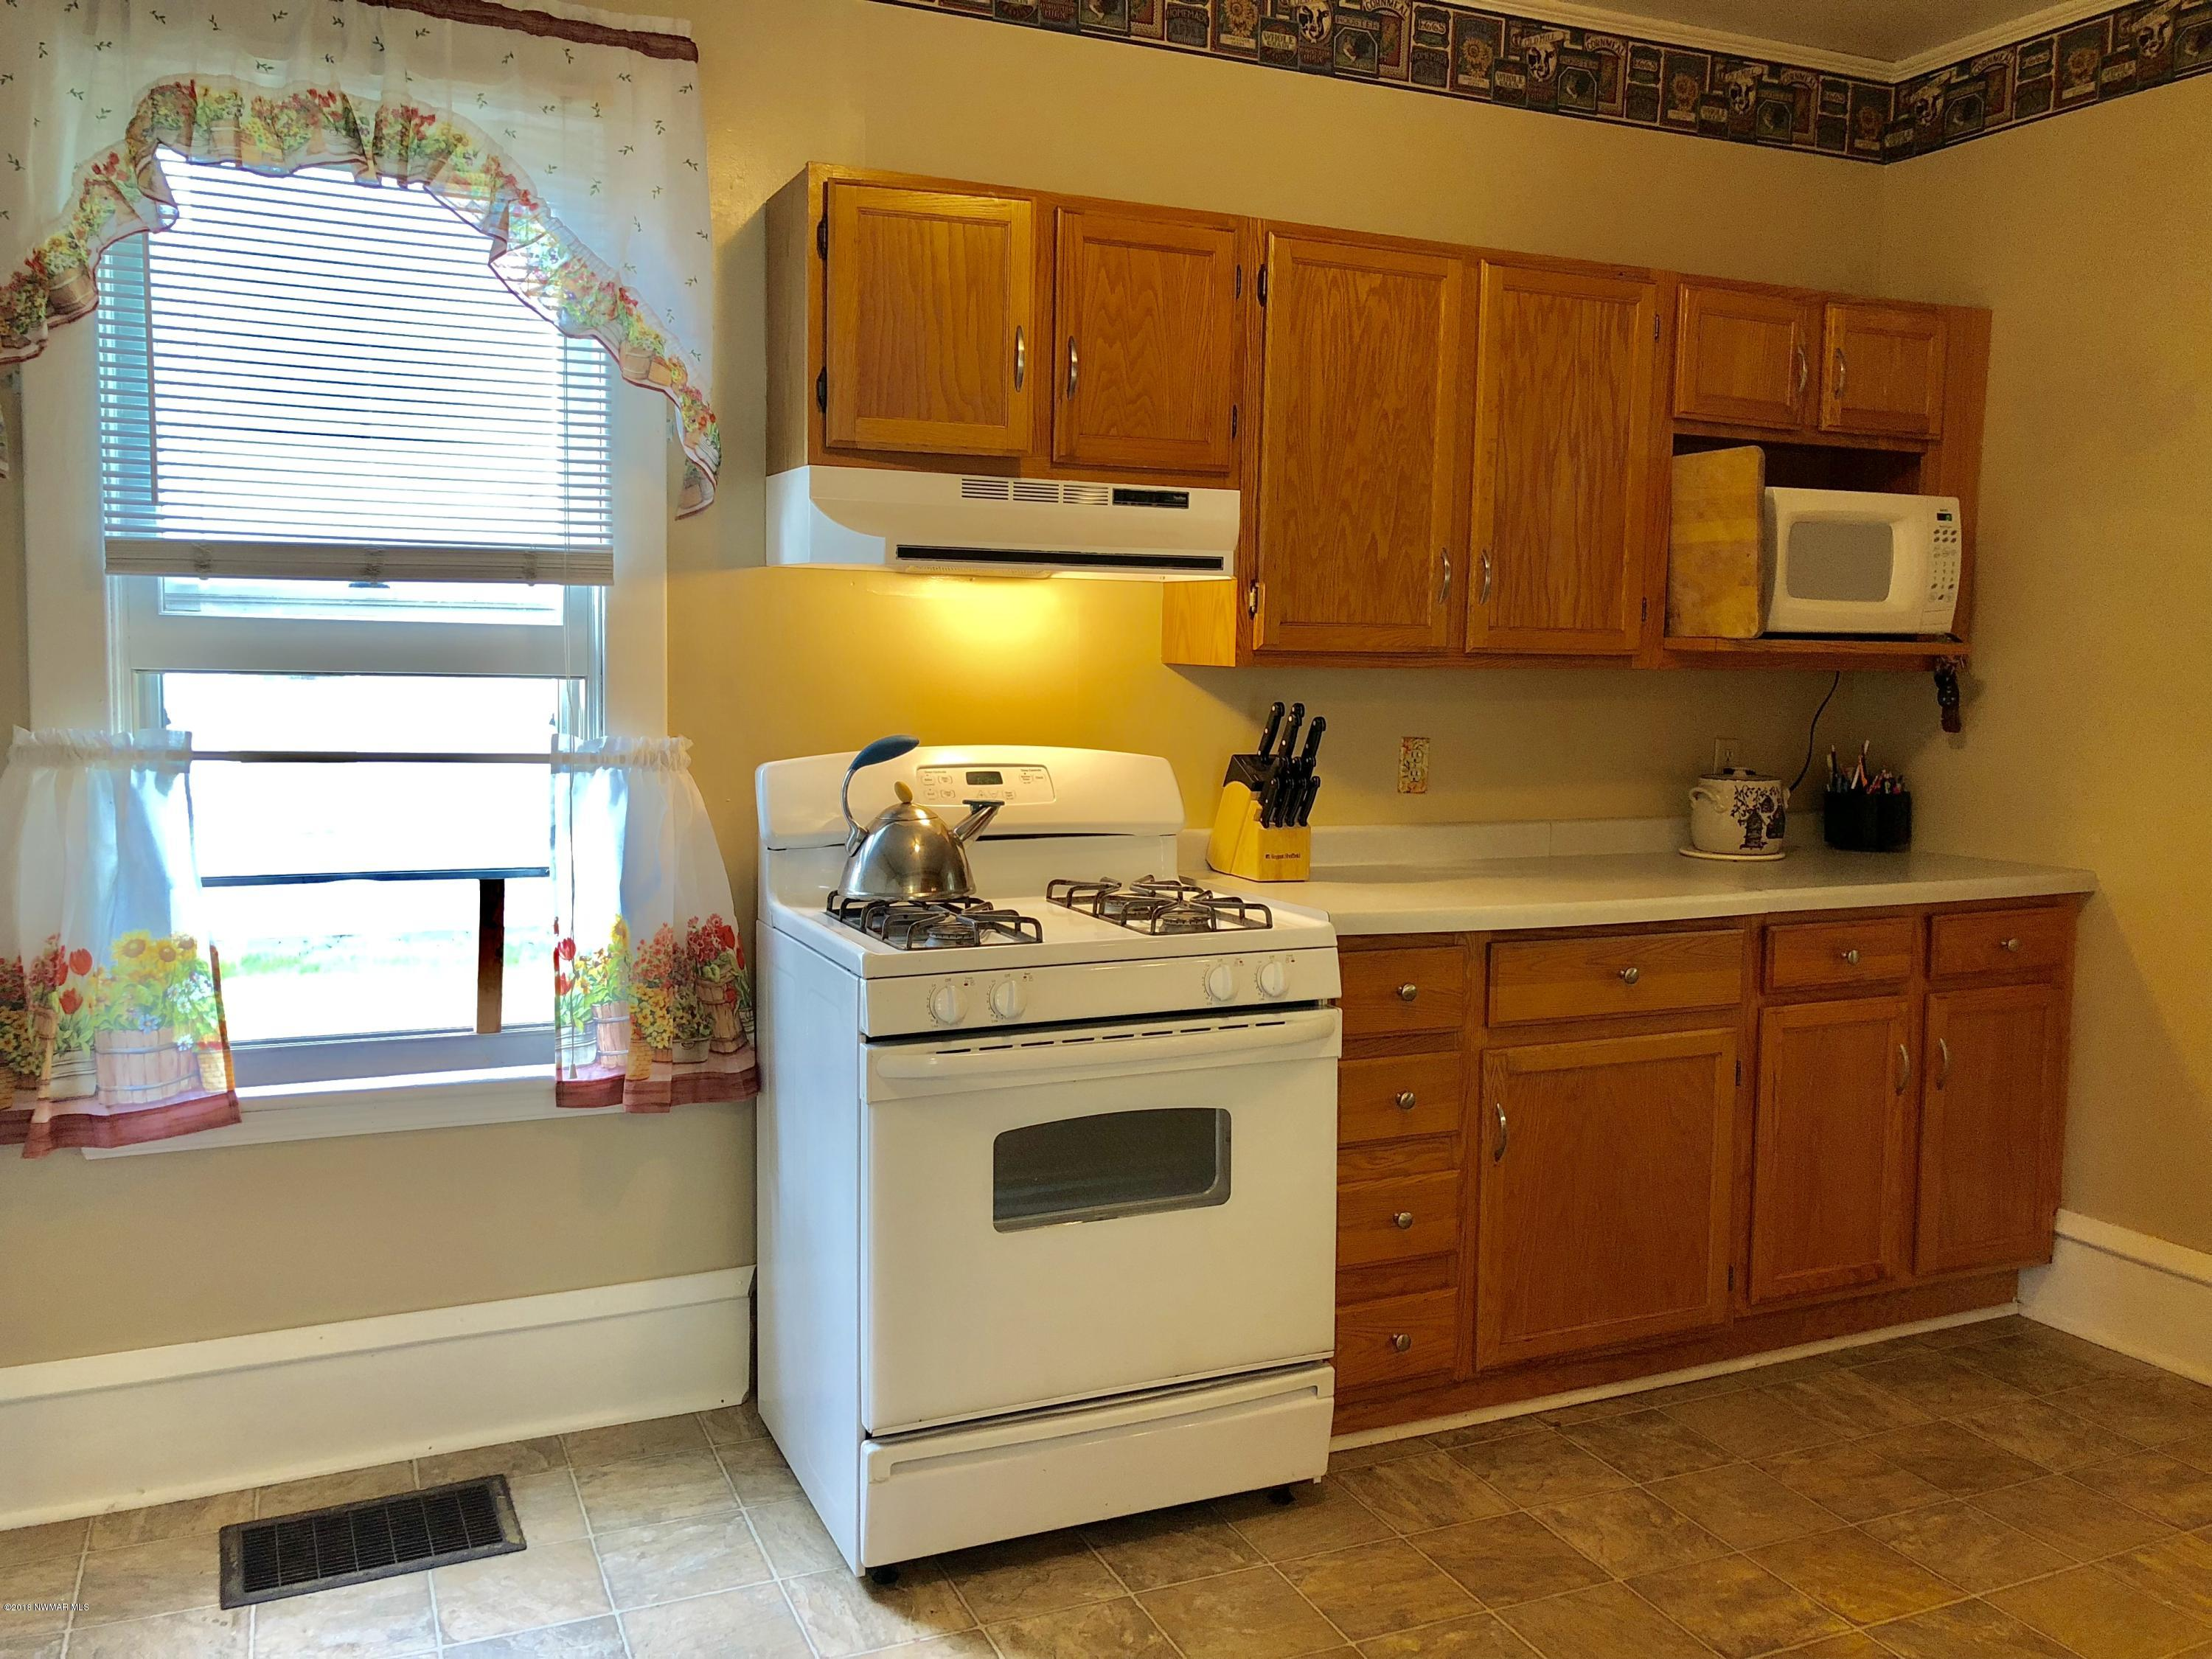 Plenty of cabinets in the kitchen